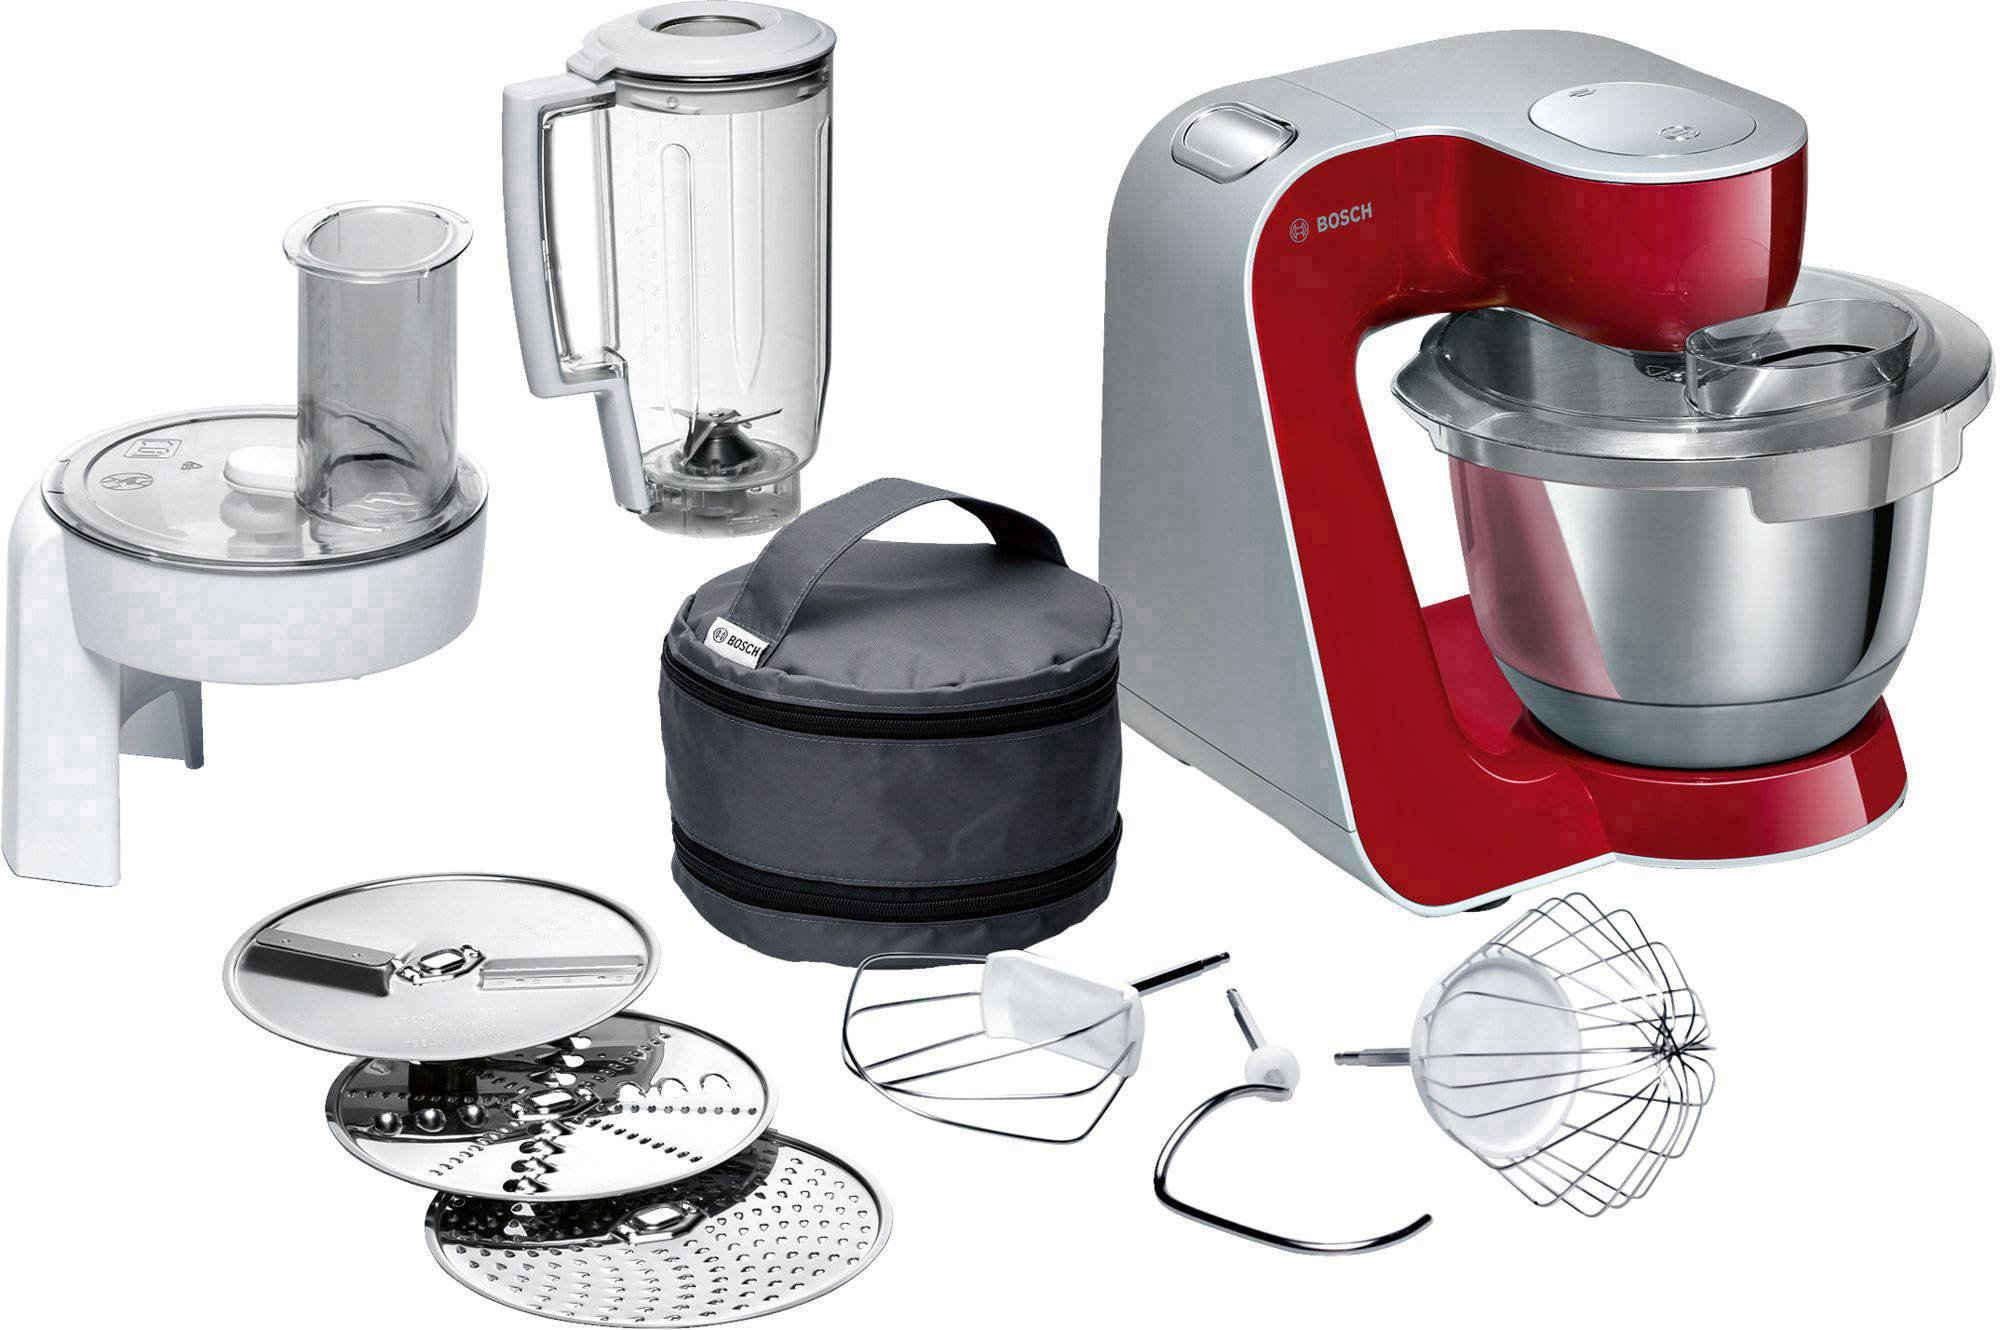 Bosch Haushalt Mum Food Processor W Dark Red